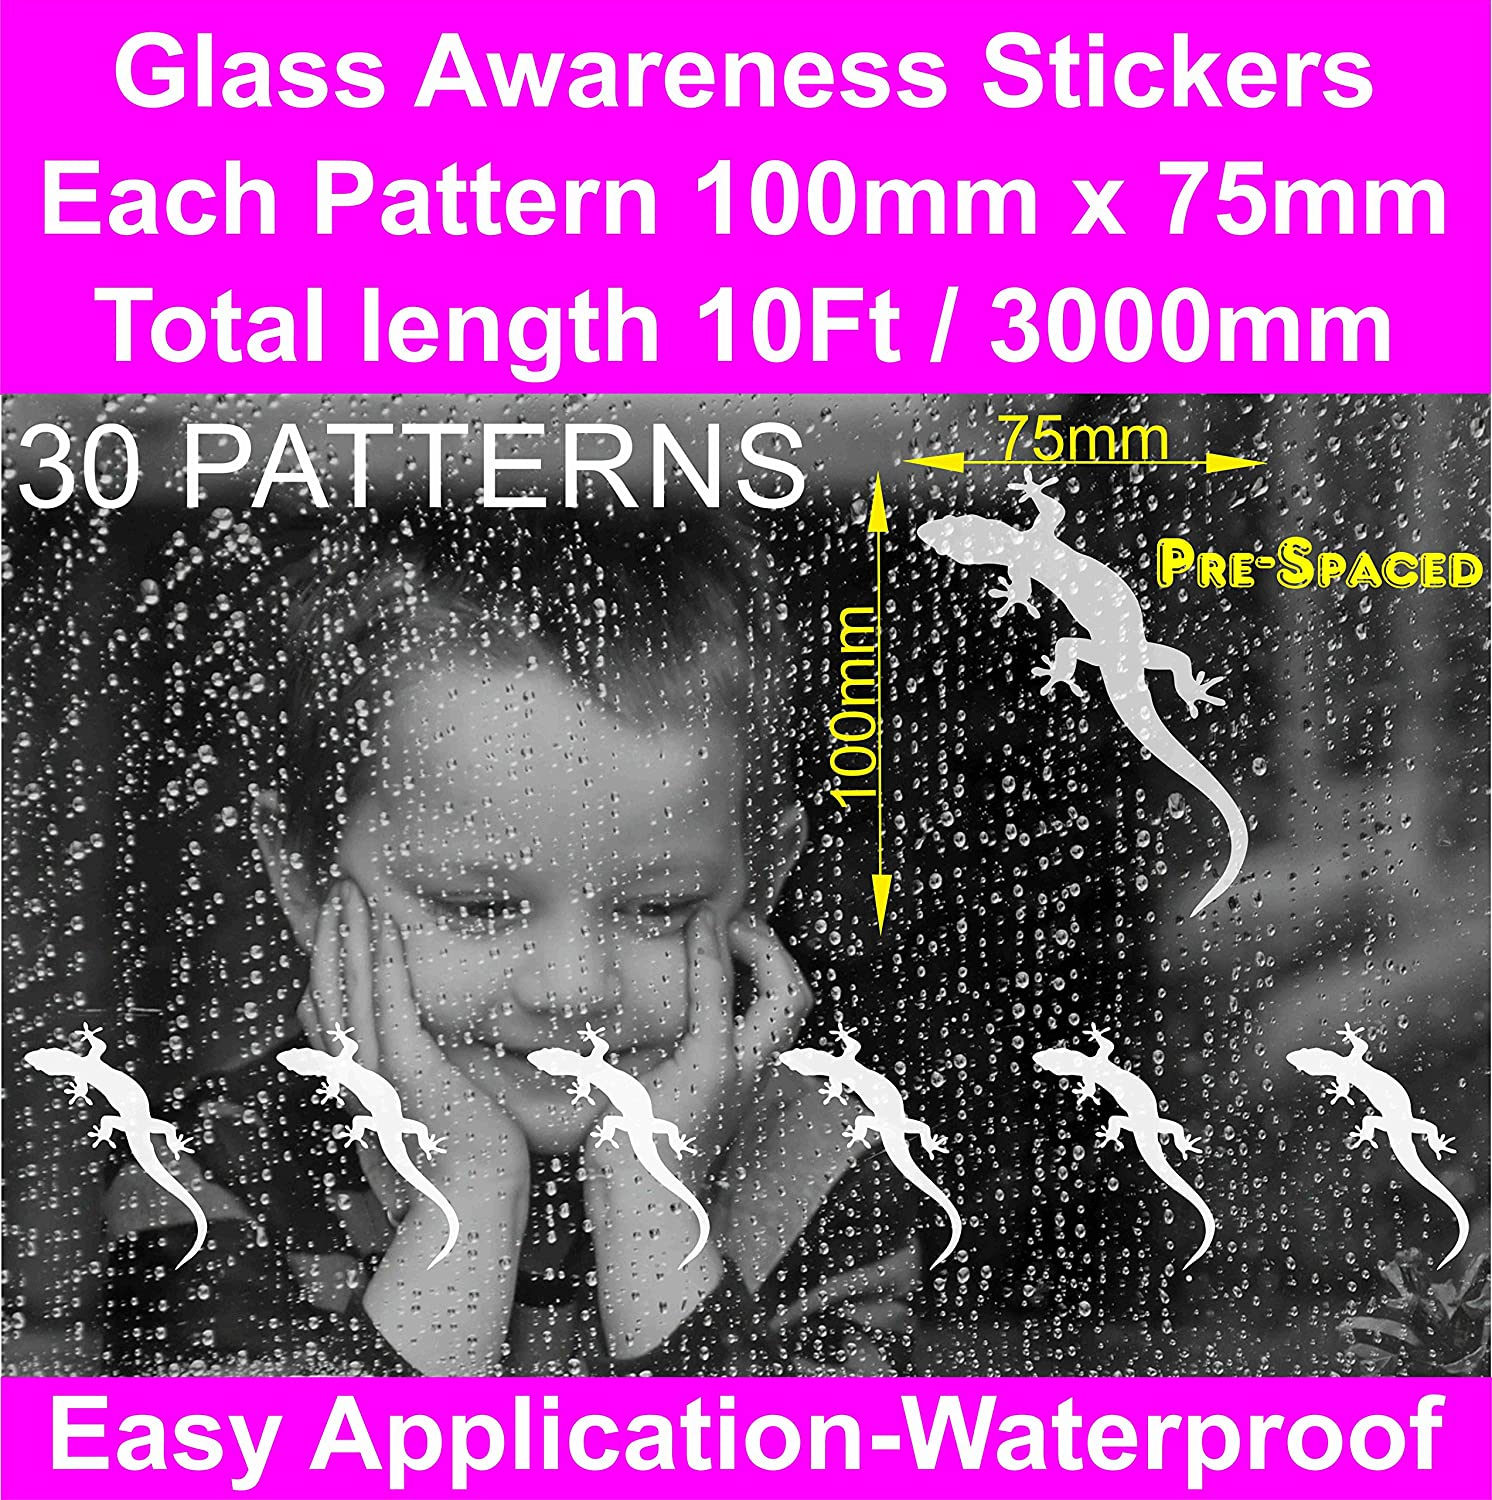 Amazon com 30 patterns 10ft 3000mm glass manifestation geckos lizards safety stickers etch effect window film pre spaced frosted glass stickers